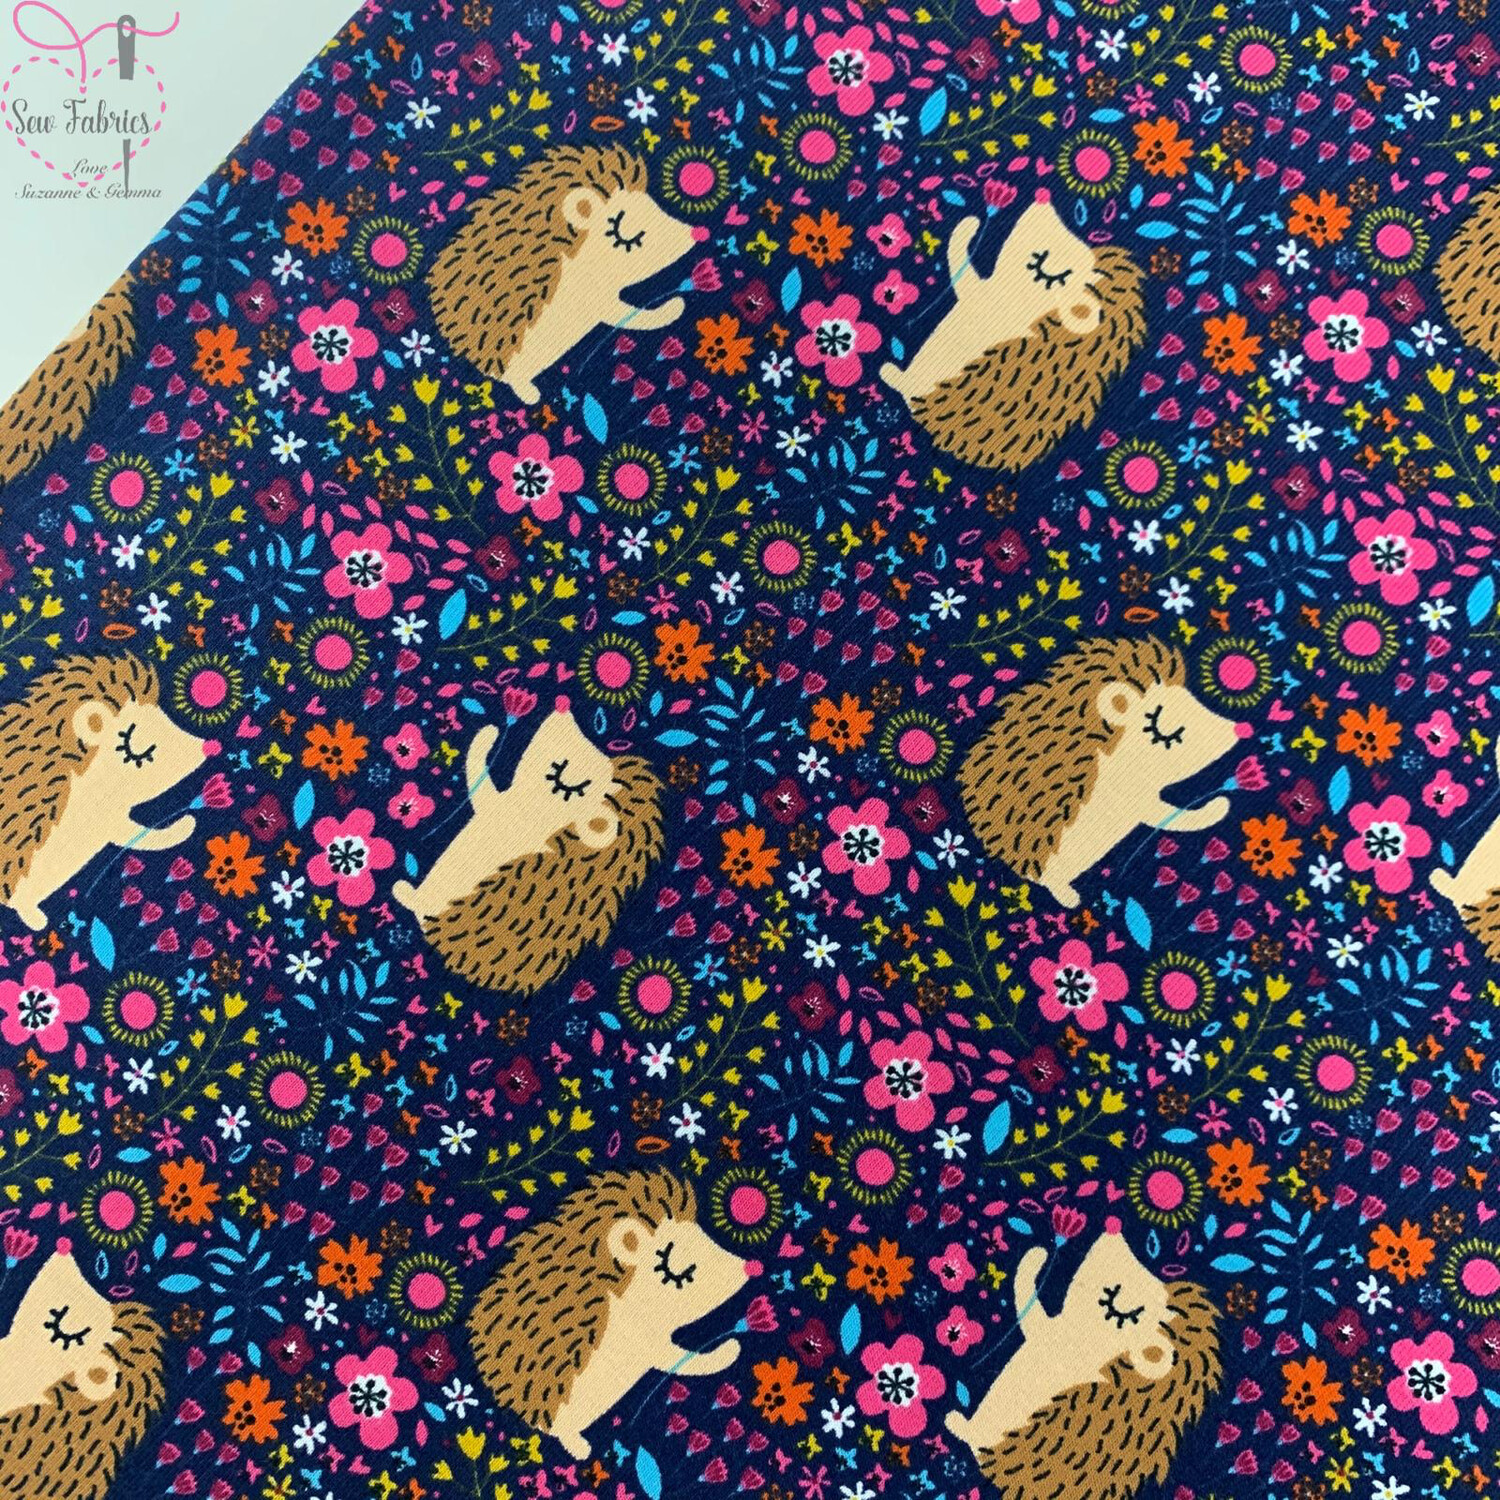 Navy Blue Hedgehog Cotton Elastane Jersey Fabric, Dress, Children's